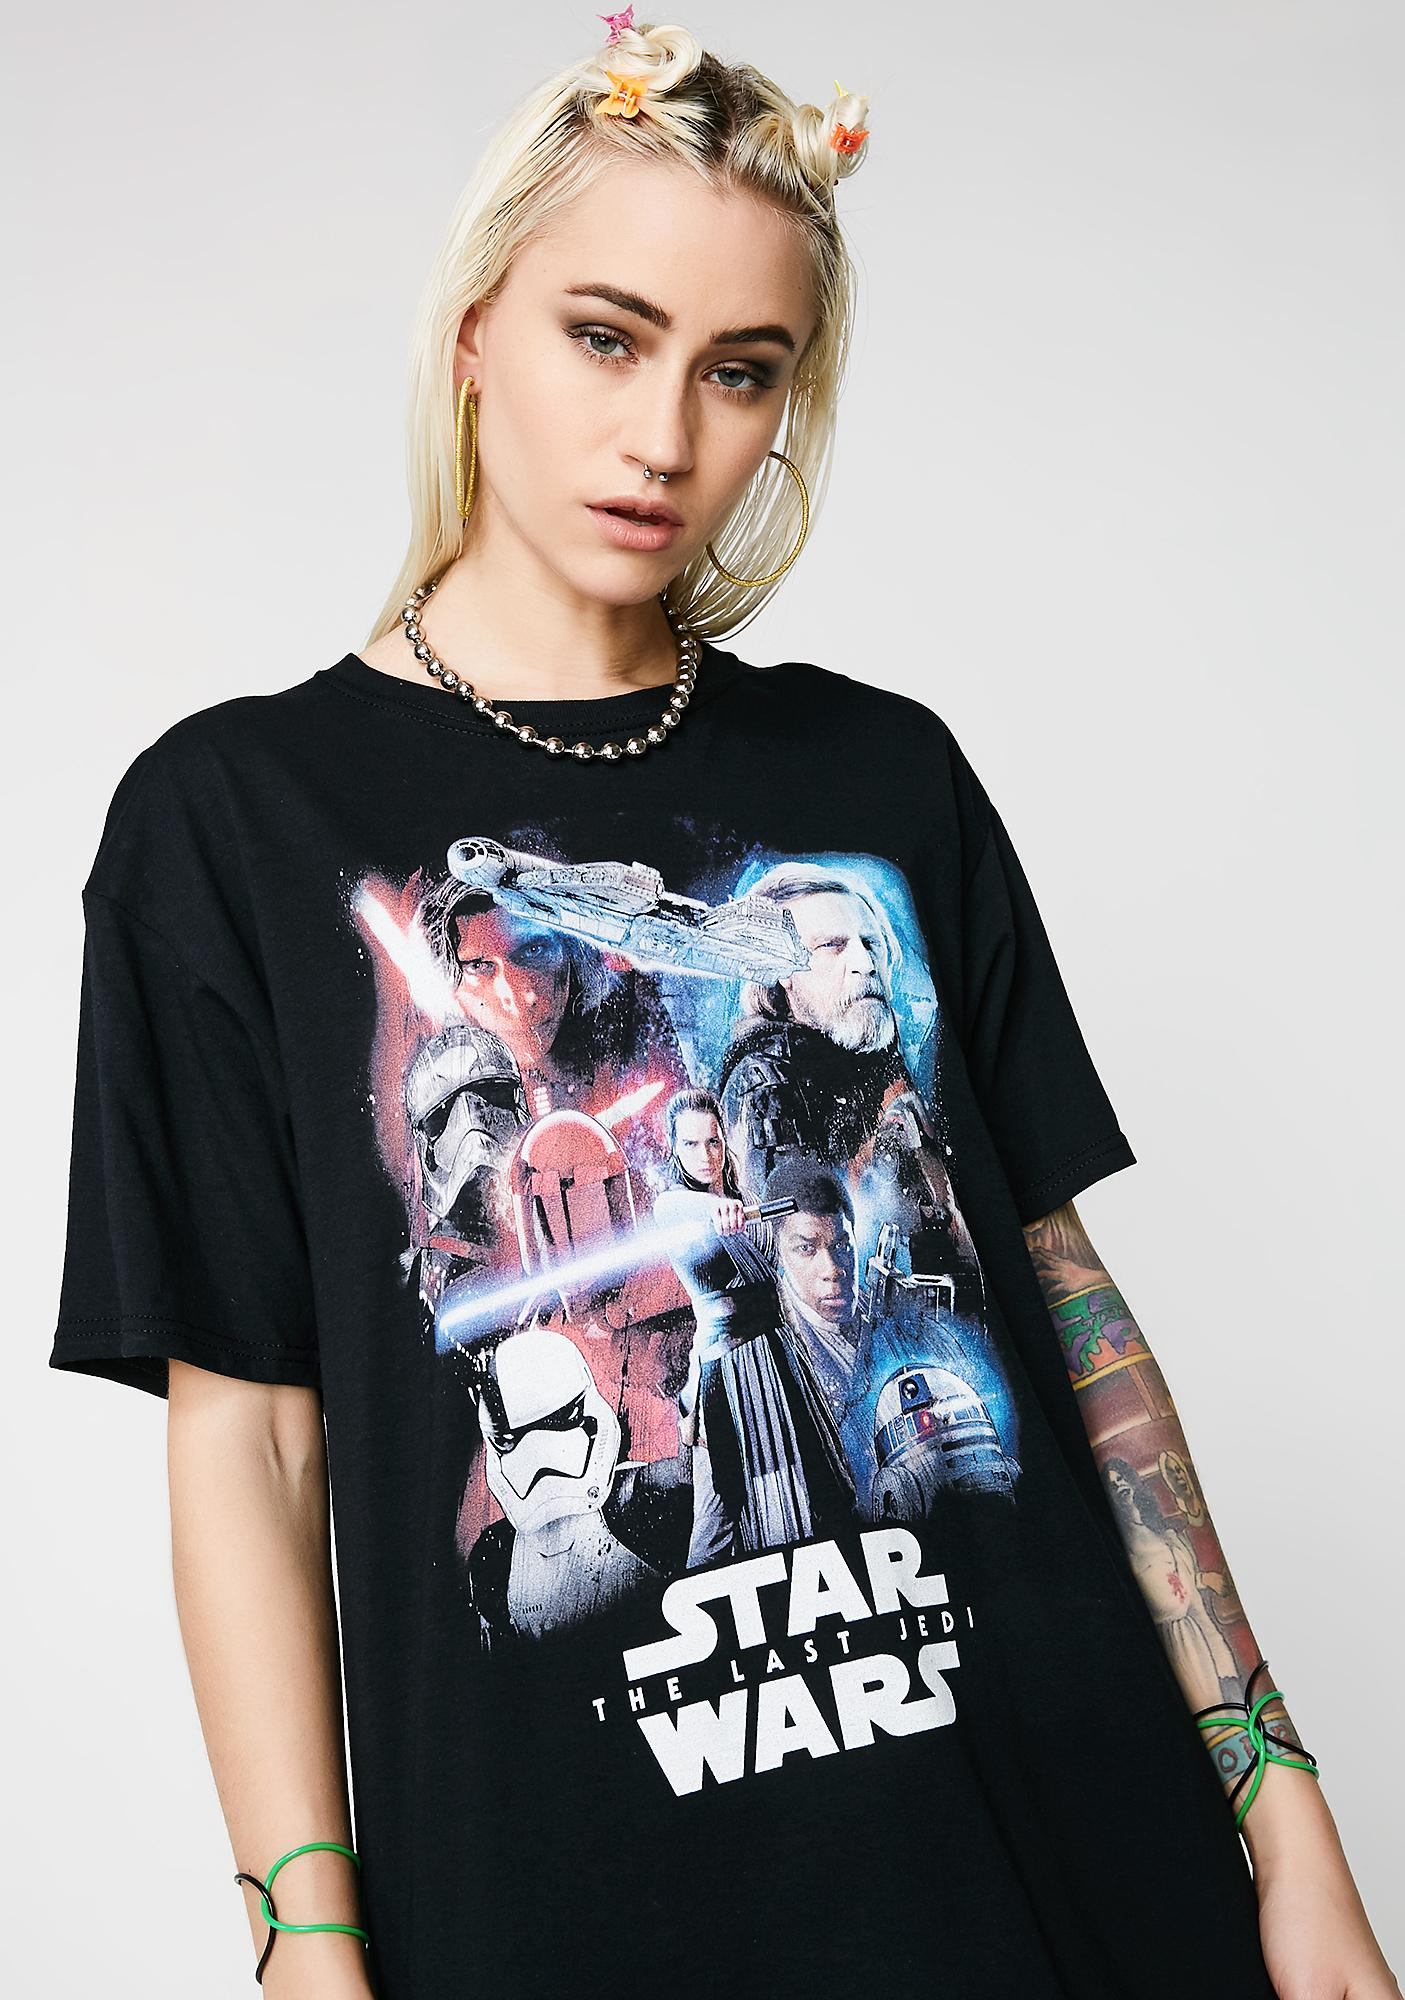 Join The Rebels Graphic Tee